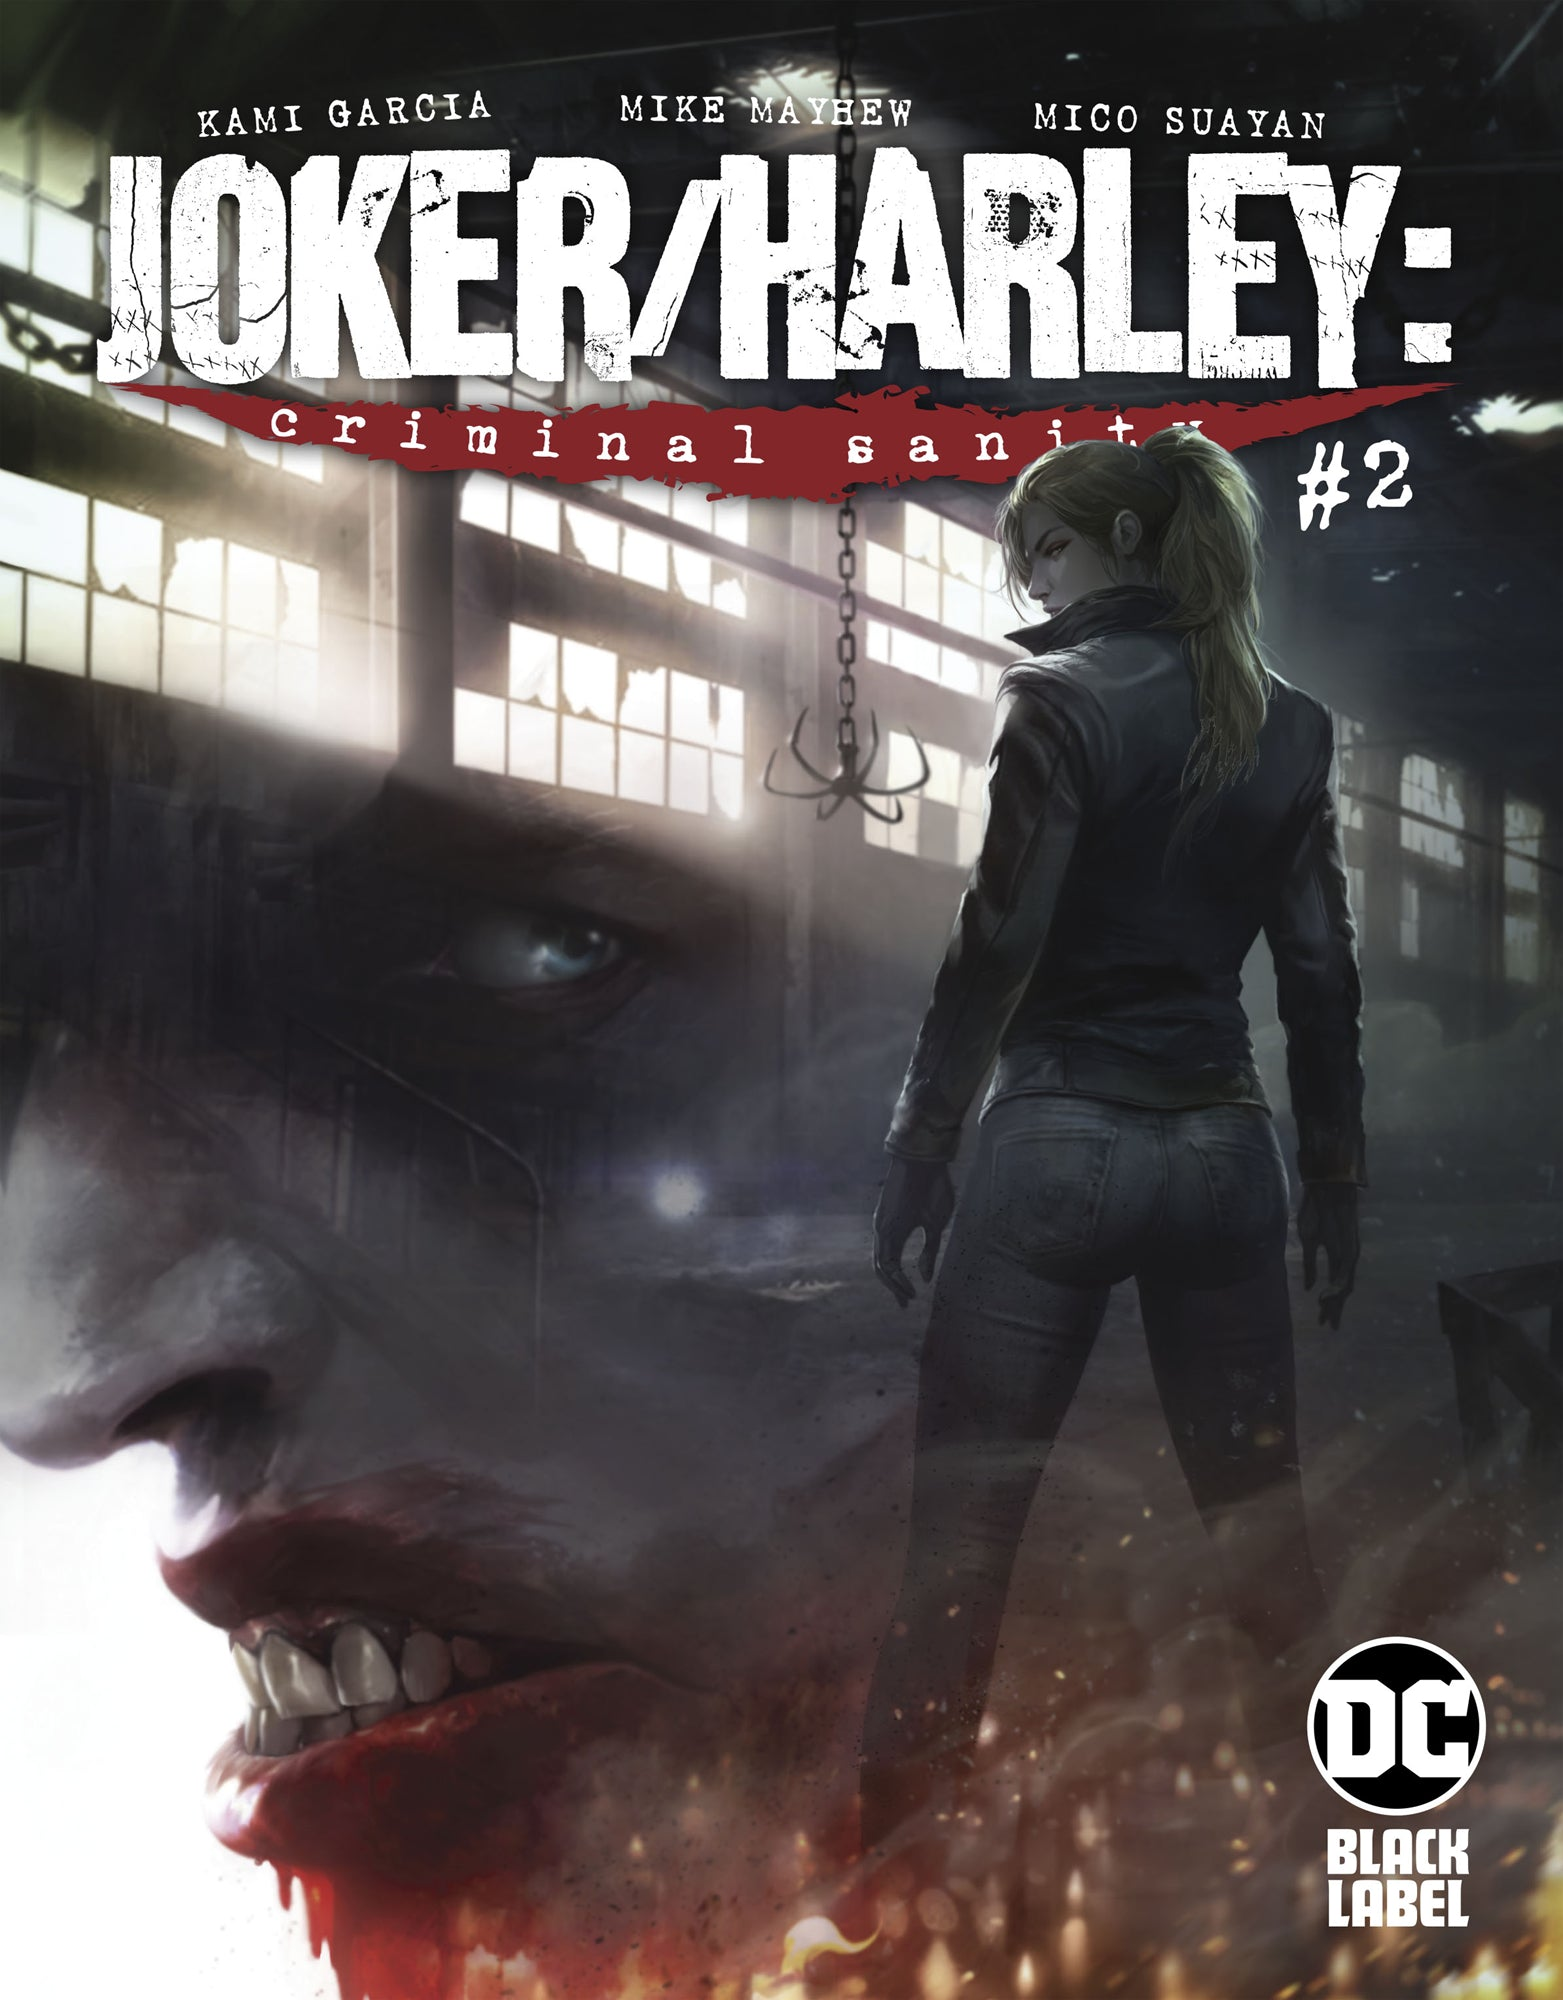 JOKER HARLEY CRIMINAL SANITY #2 (OF 9) (MR) | Game Master's Emporium (The New GME)